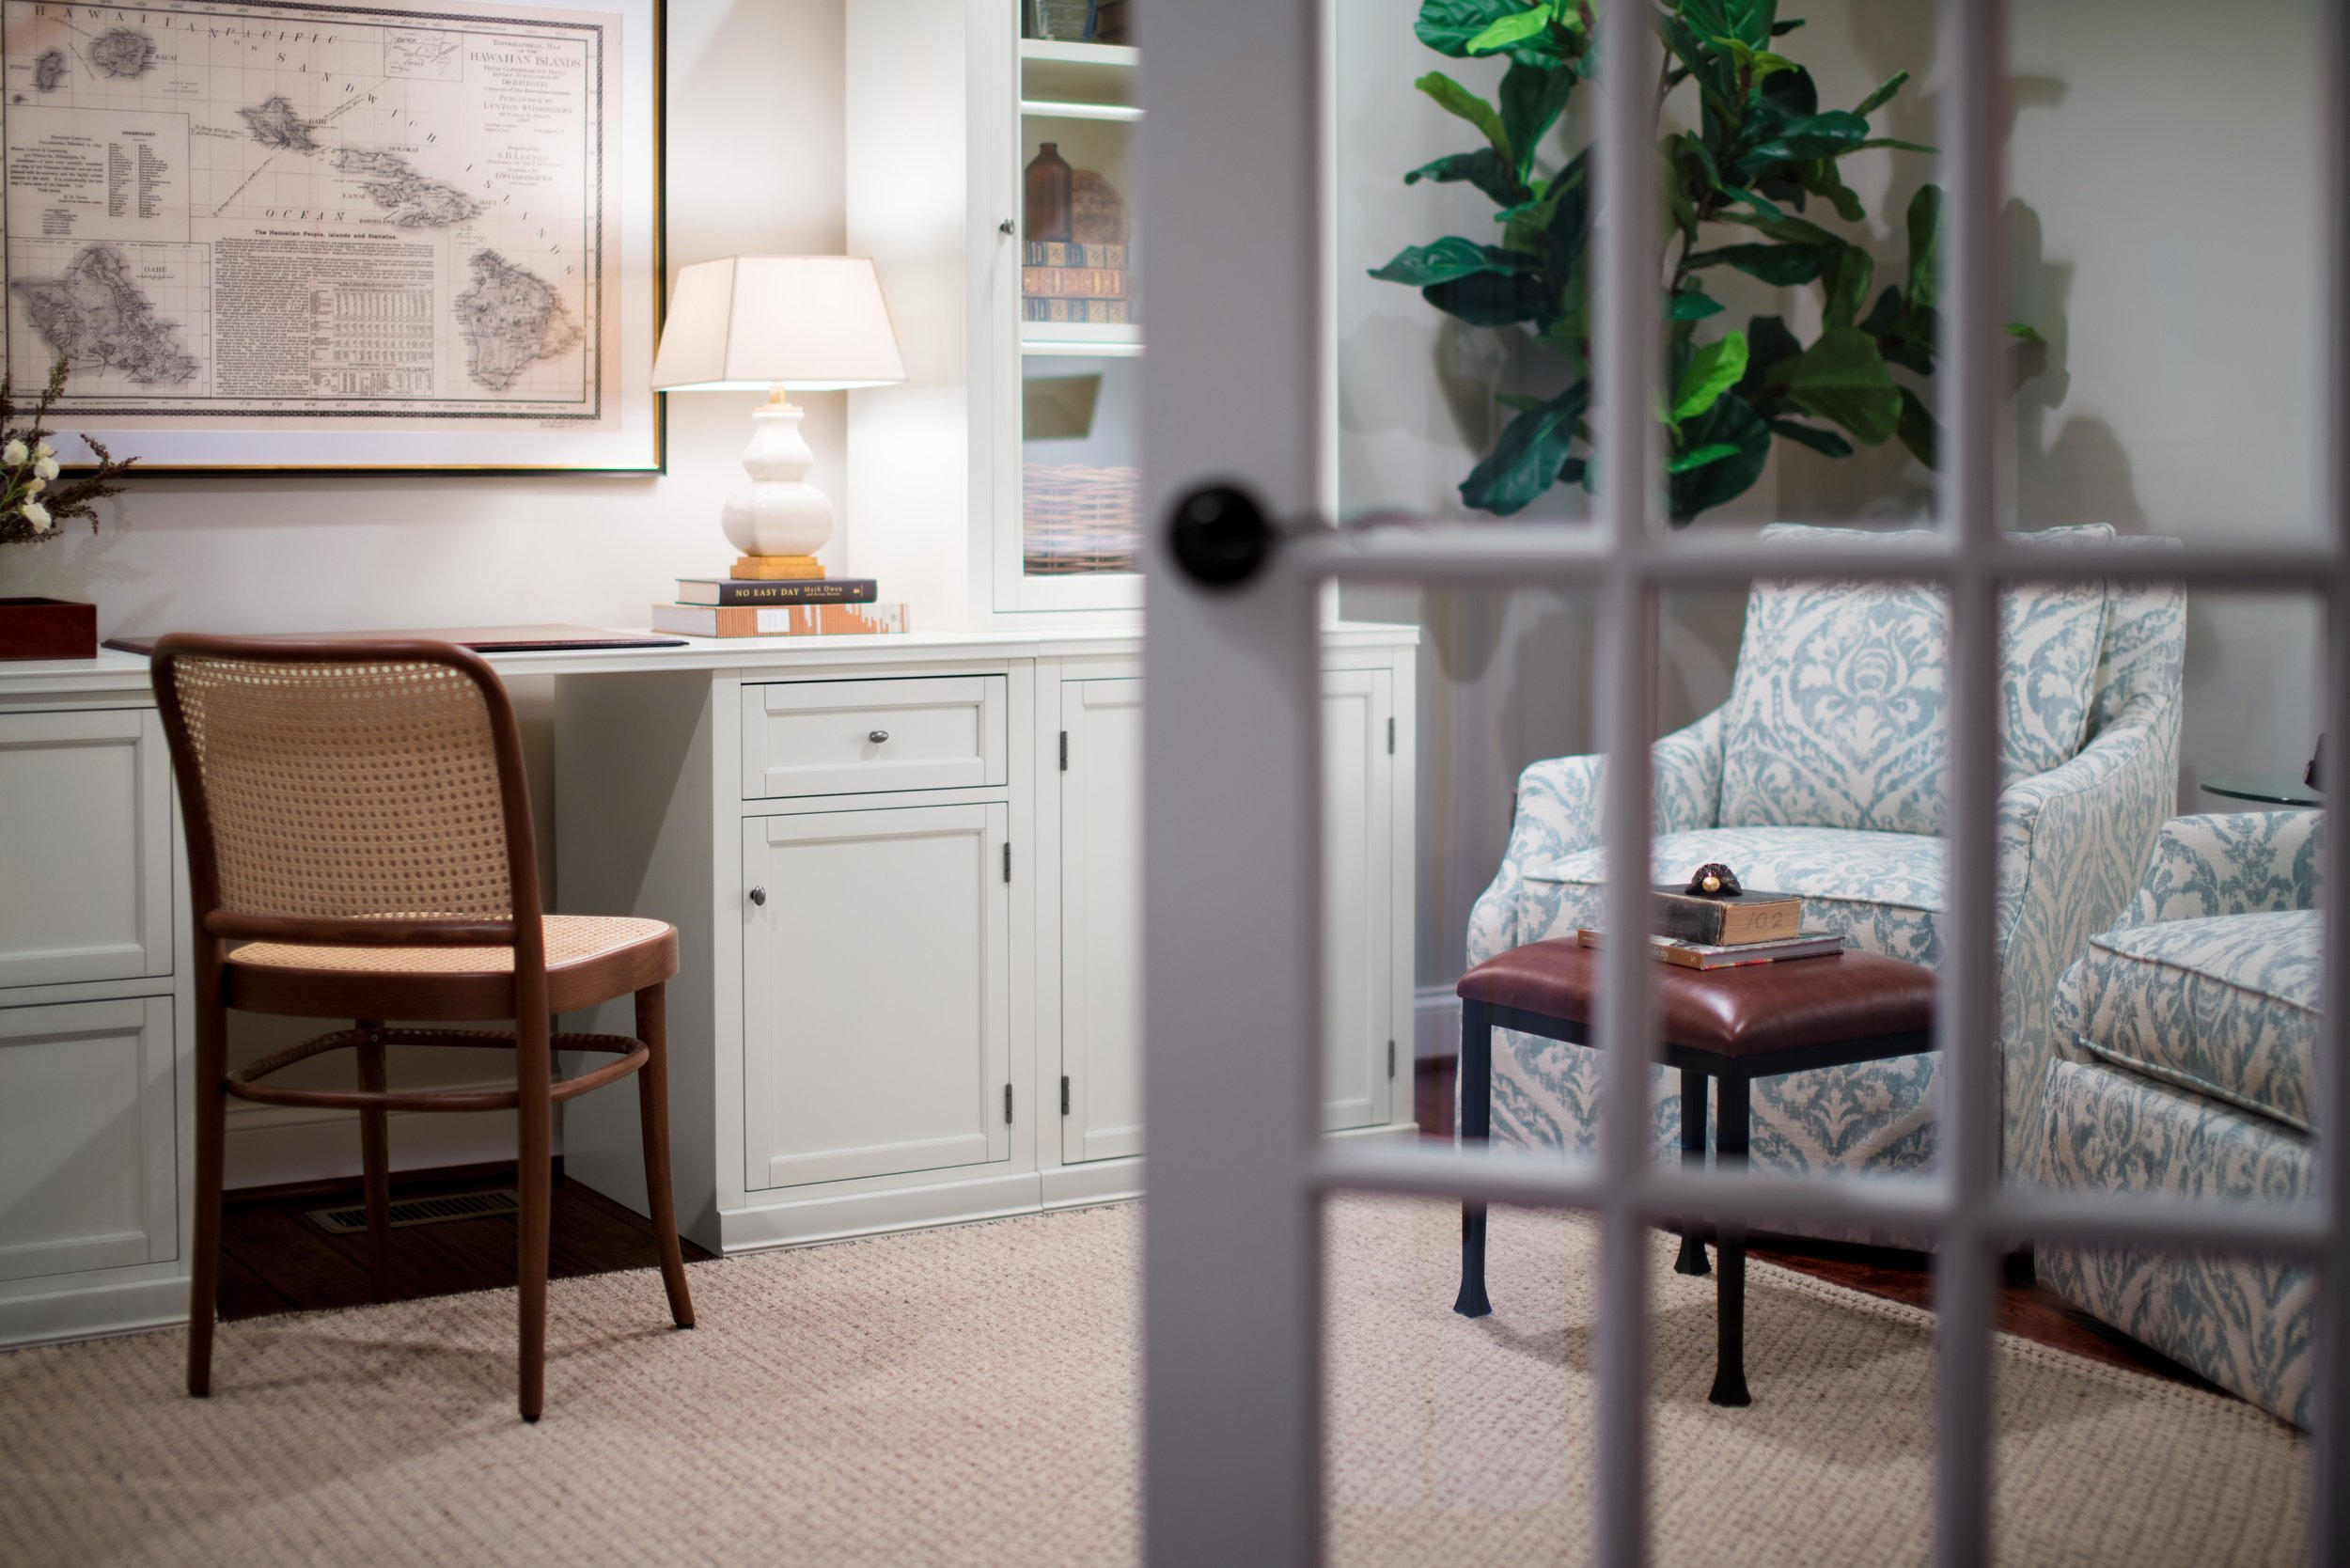 CentervilleTerraceOffice-FrenchDoors.JPG